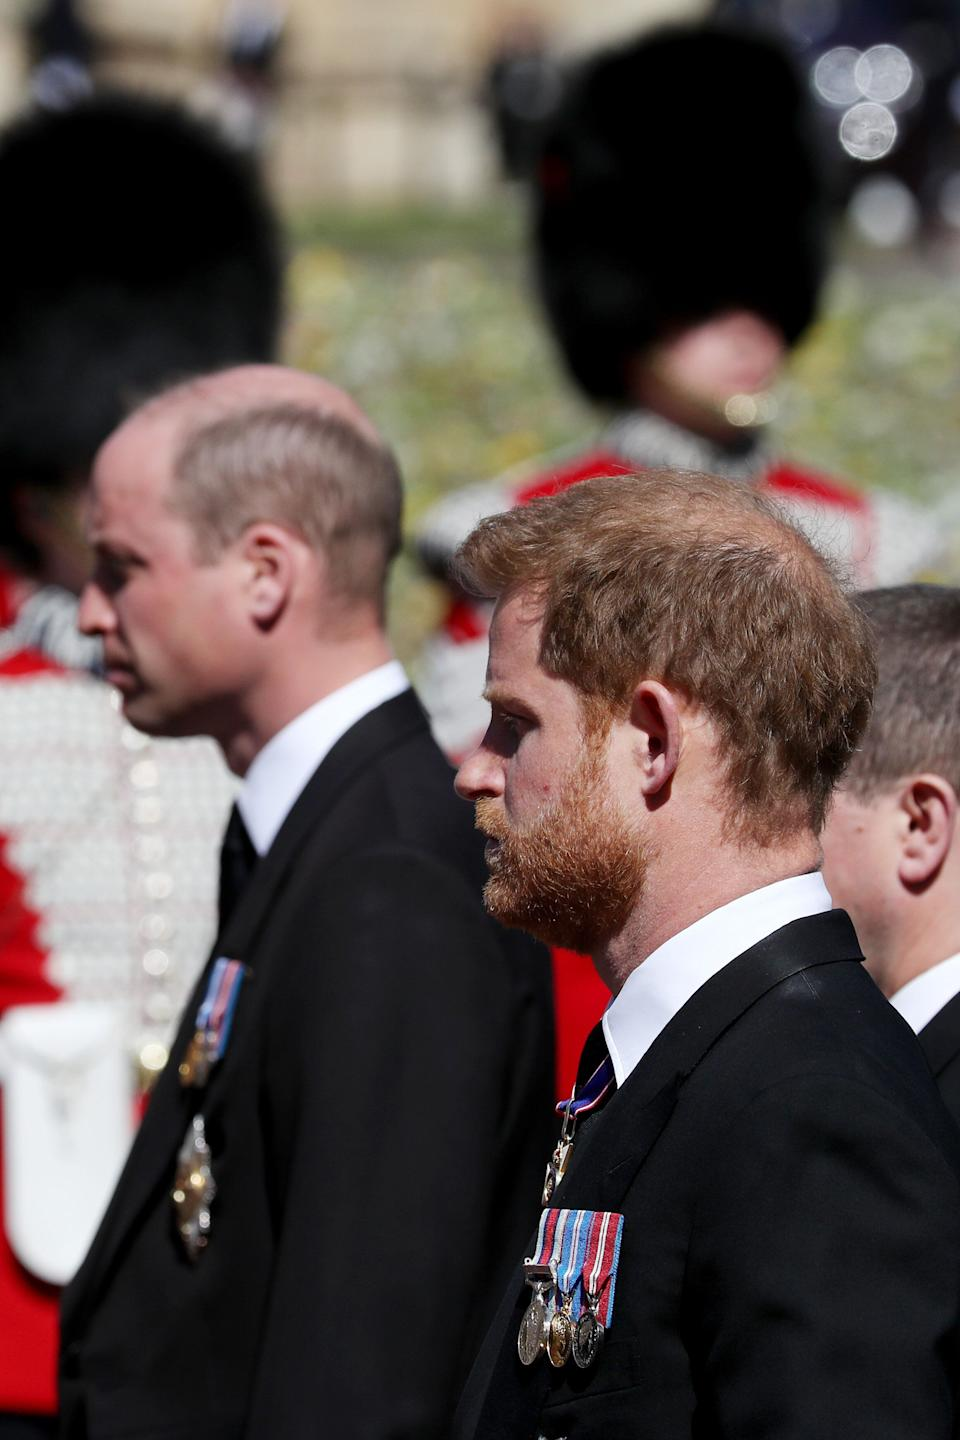 Princes William (left) and Harry walk in the procession.